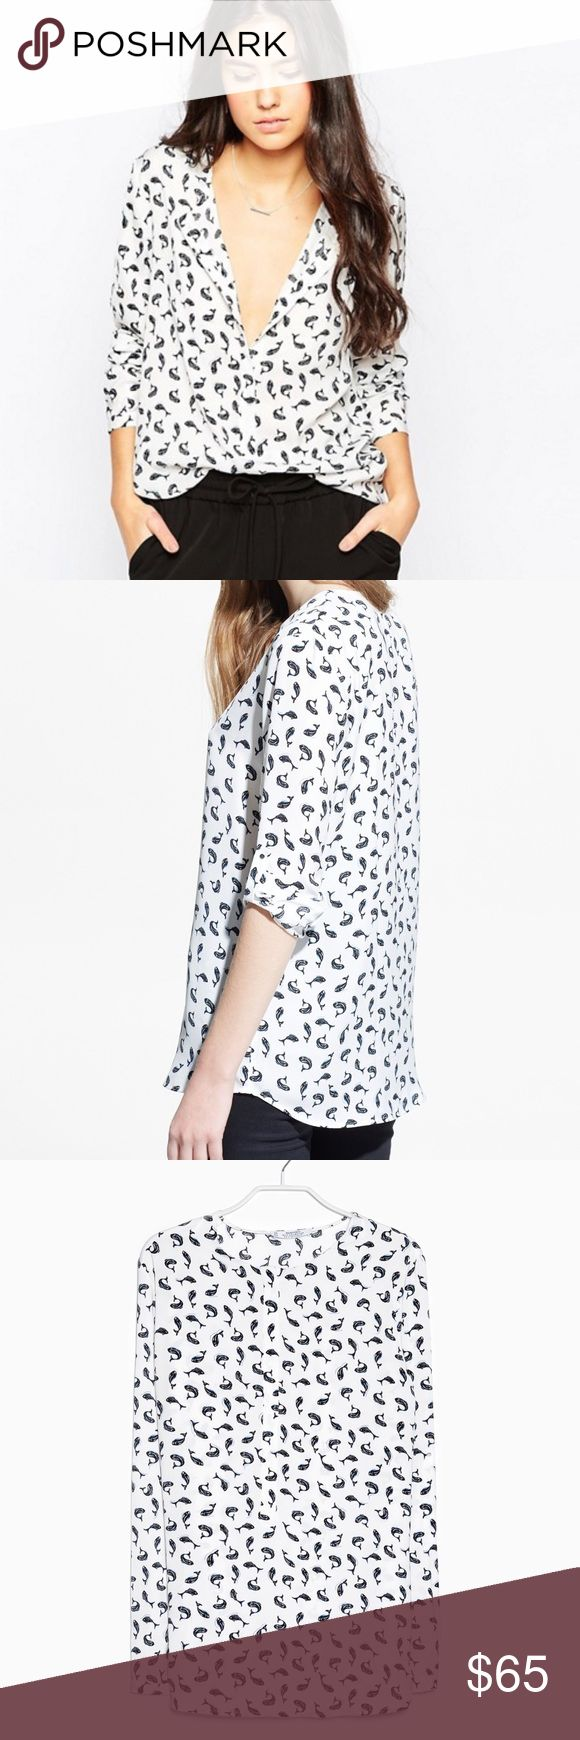 Mango Suit Collection All Over Fish Print Blouse Mango All Over Fish Print Shirt   Pop Over Whale Fish Print Shirt in White + Navy  Long sleeves Collarless Half button placket Rounded hem Optional tab sleeves Pull over design  Worn once - excellent condition Mango Tops Blouses